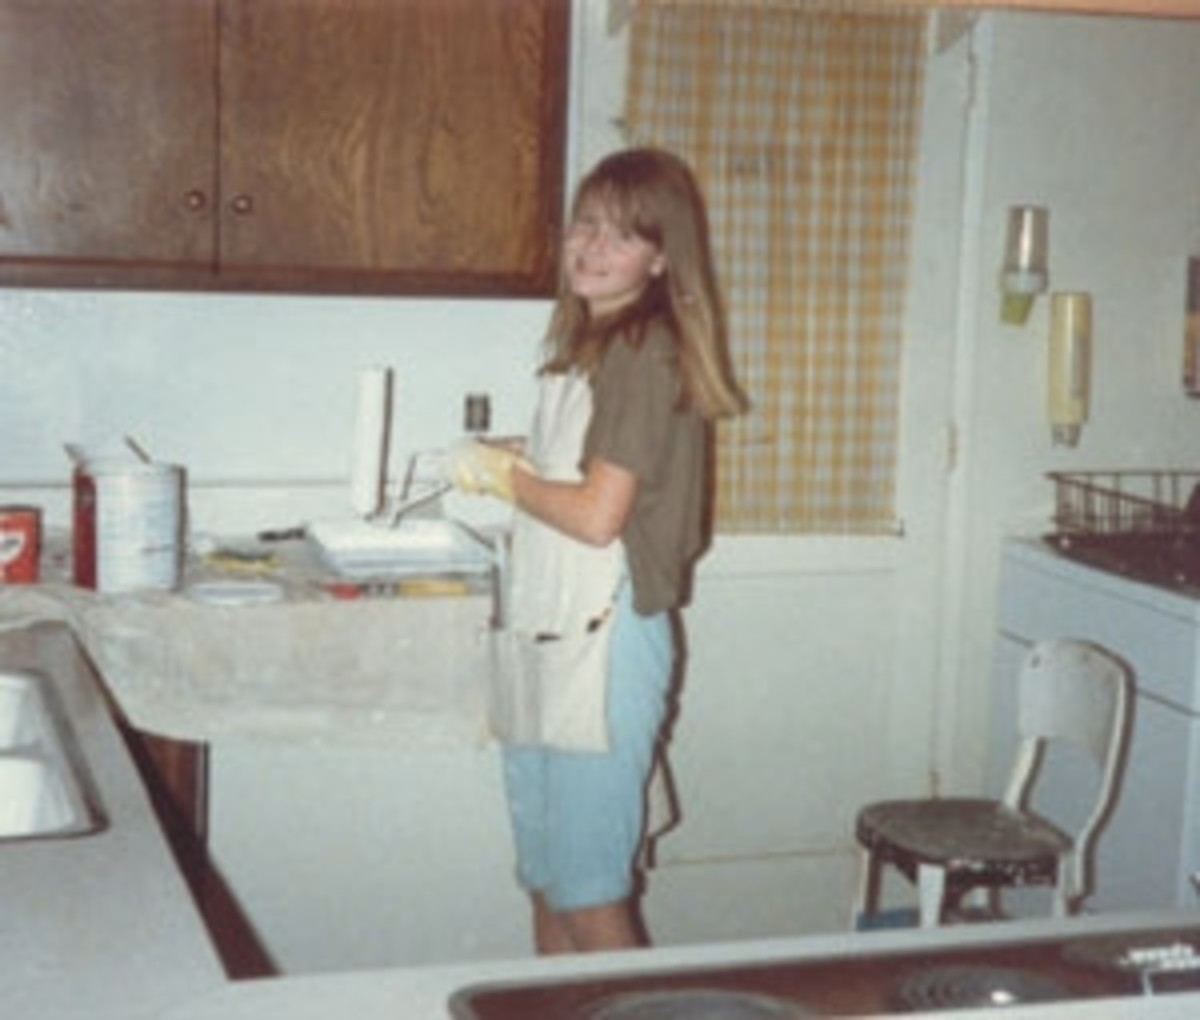 After we returned home in July, Sarah painted the kitchen. She was a very skilled painter and enjoyed the work.